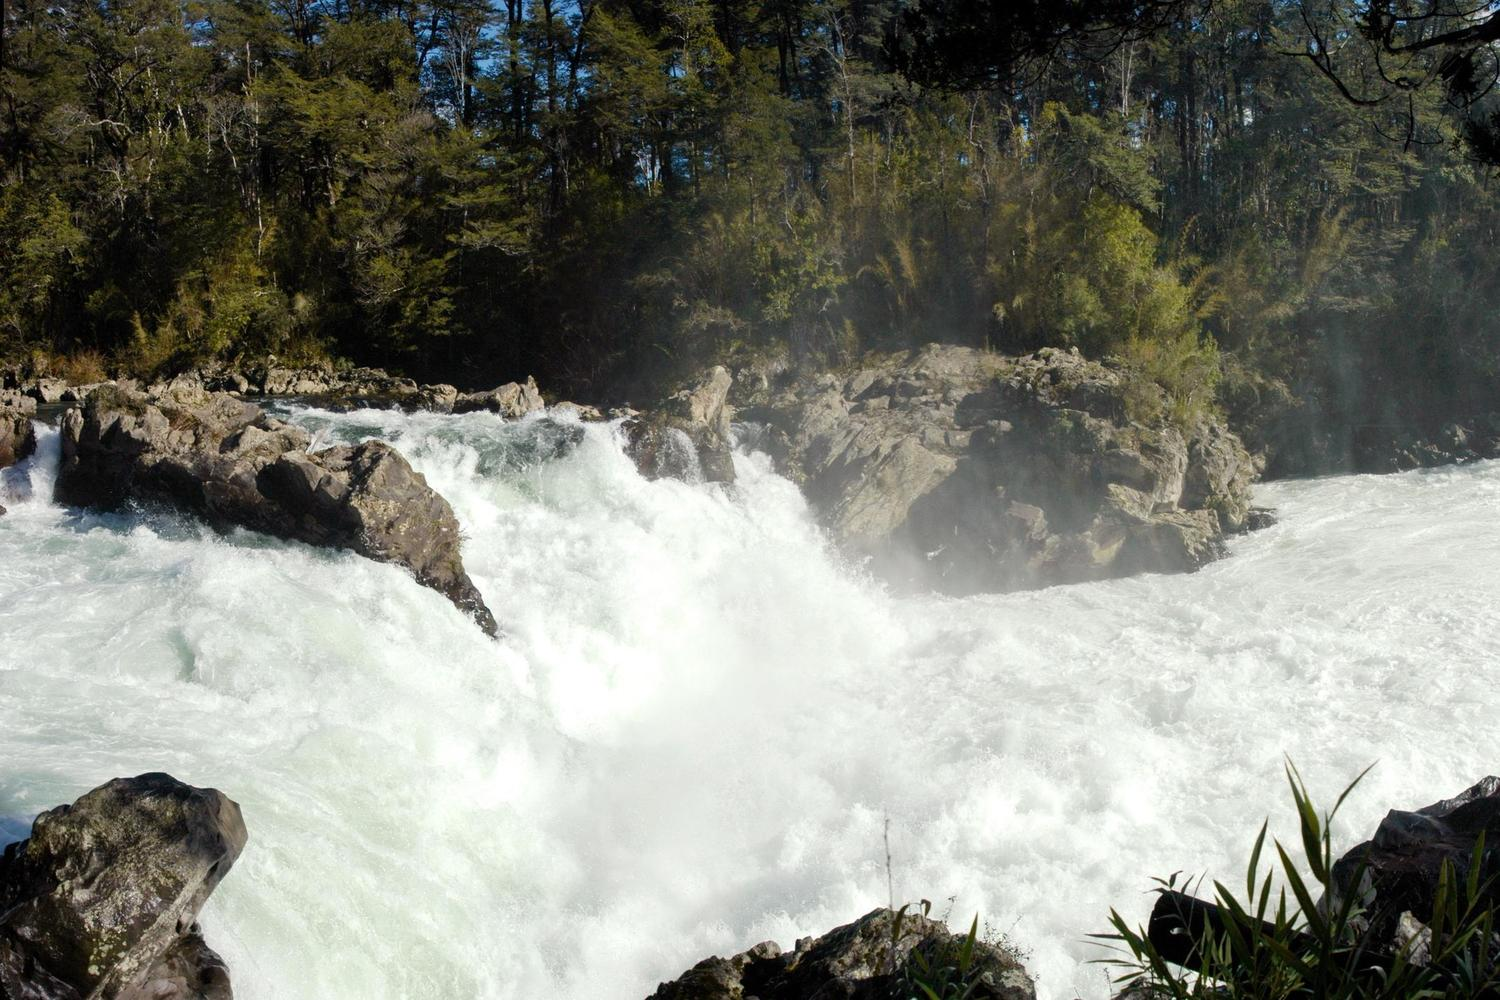 The white waters of the Trancura River, Chile